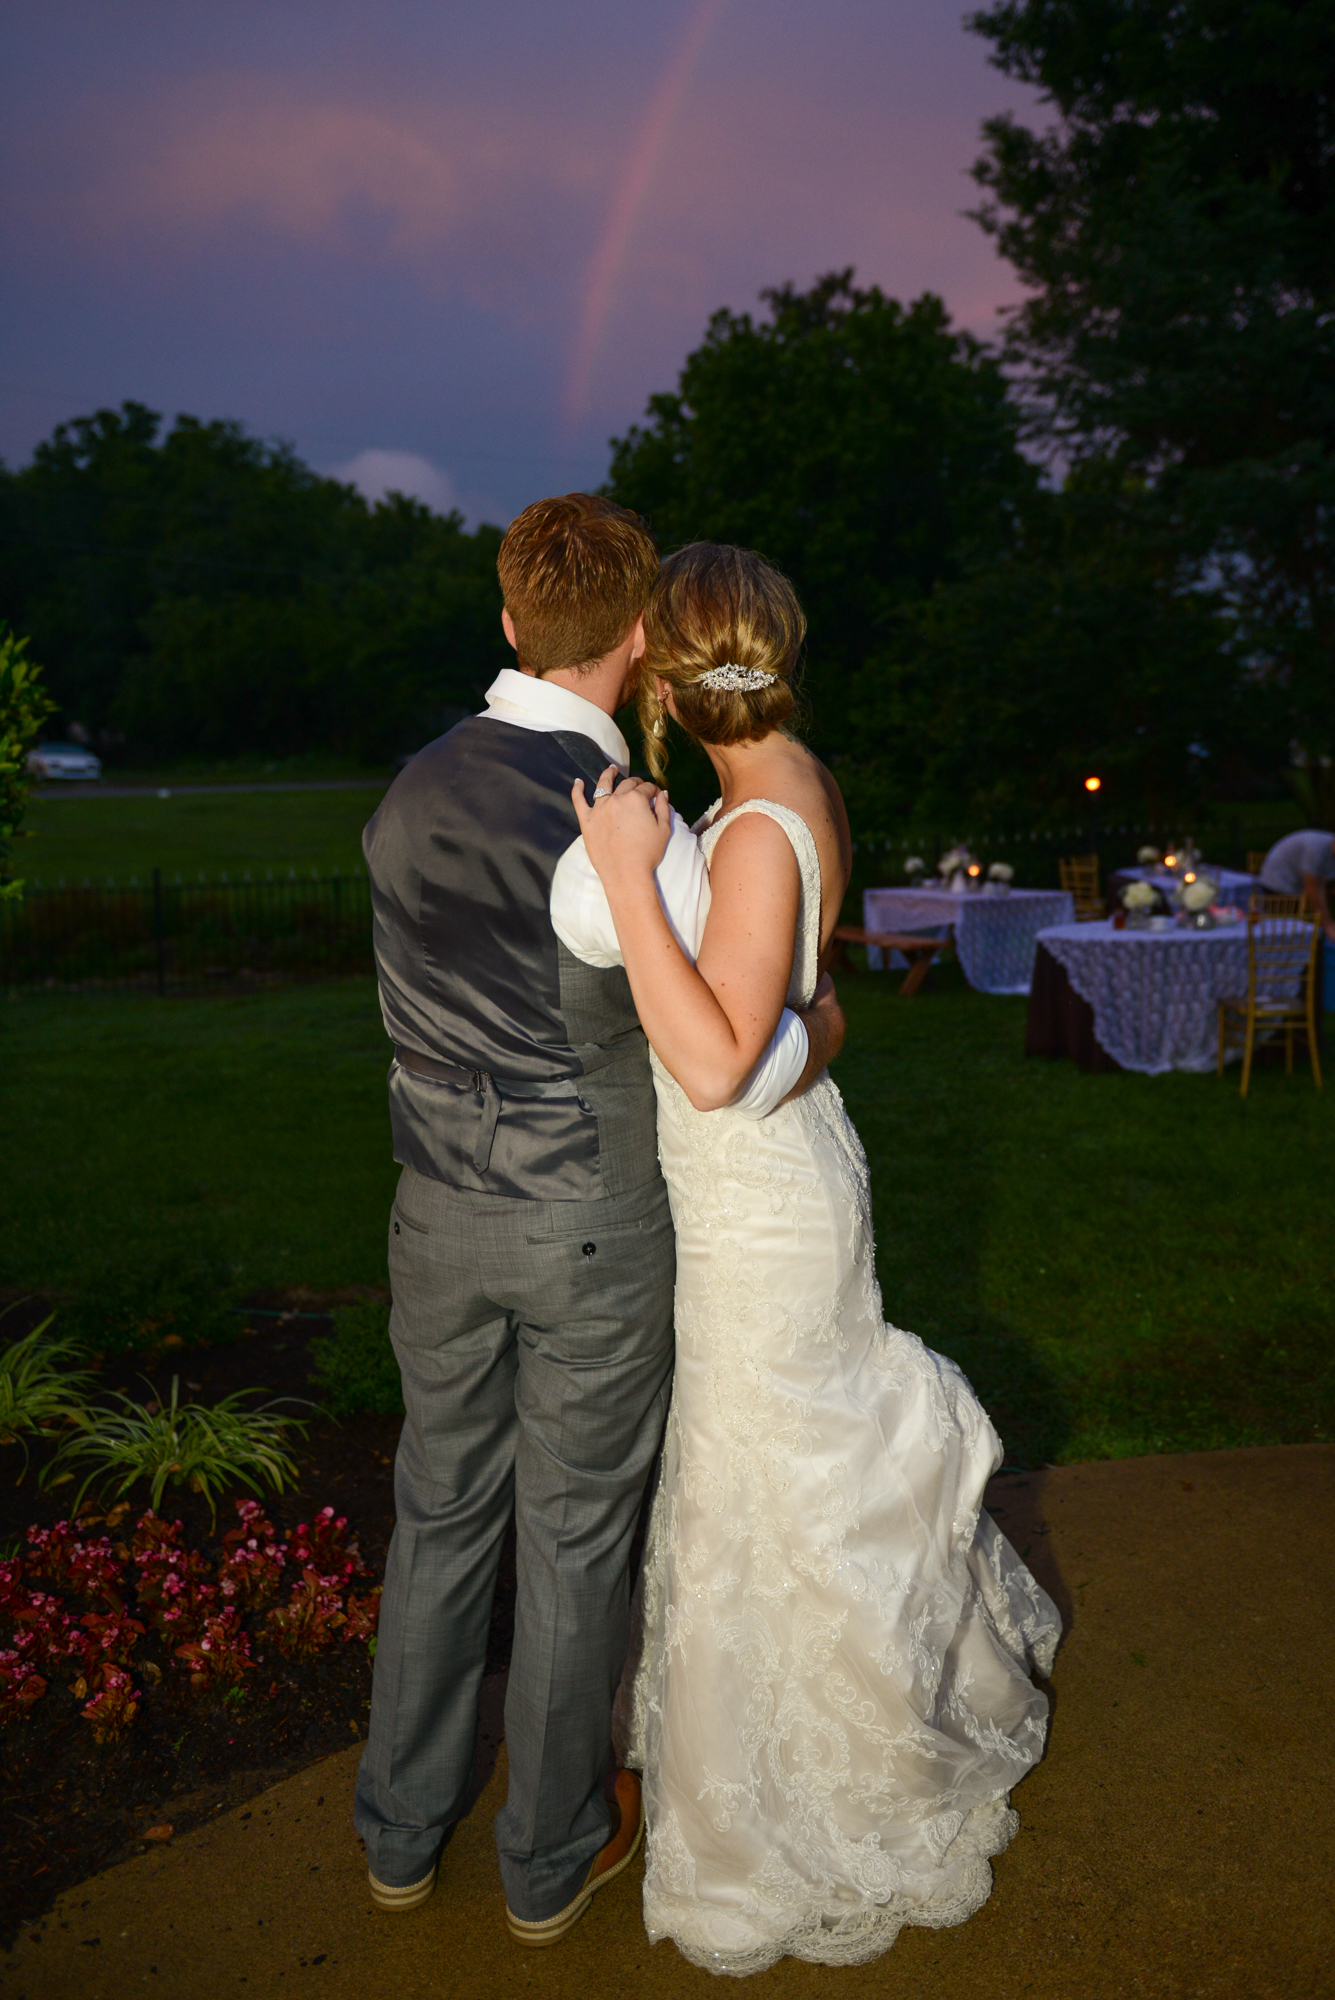 After a rainy outdoor ceremony and reception, Nikkie & Zach were rewarded with a beautiful rainbow at their reception.